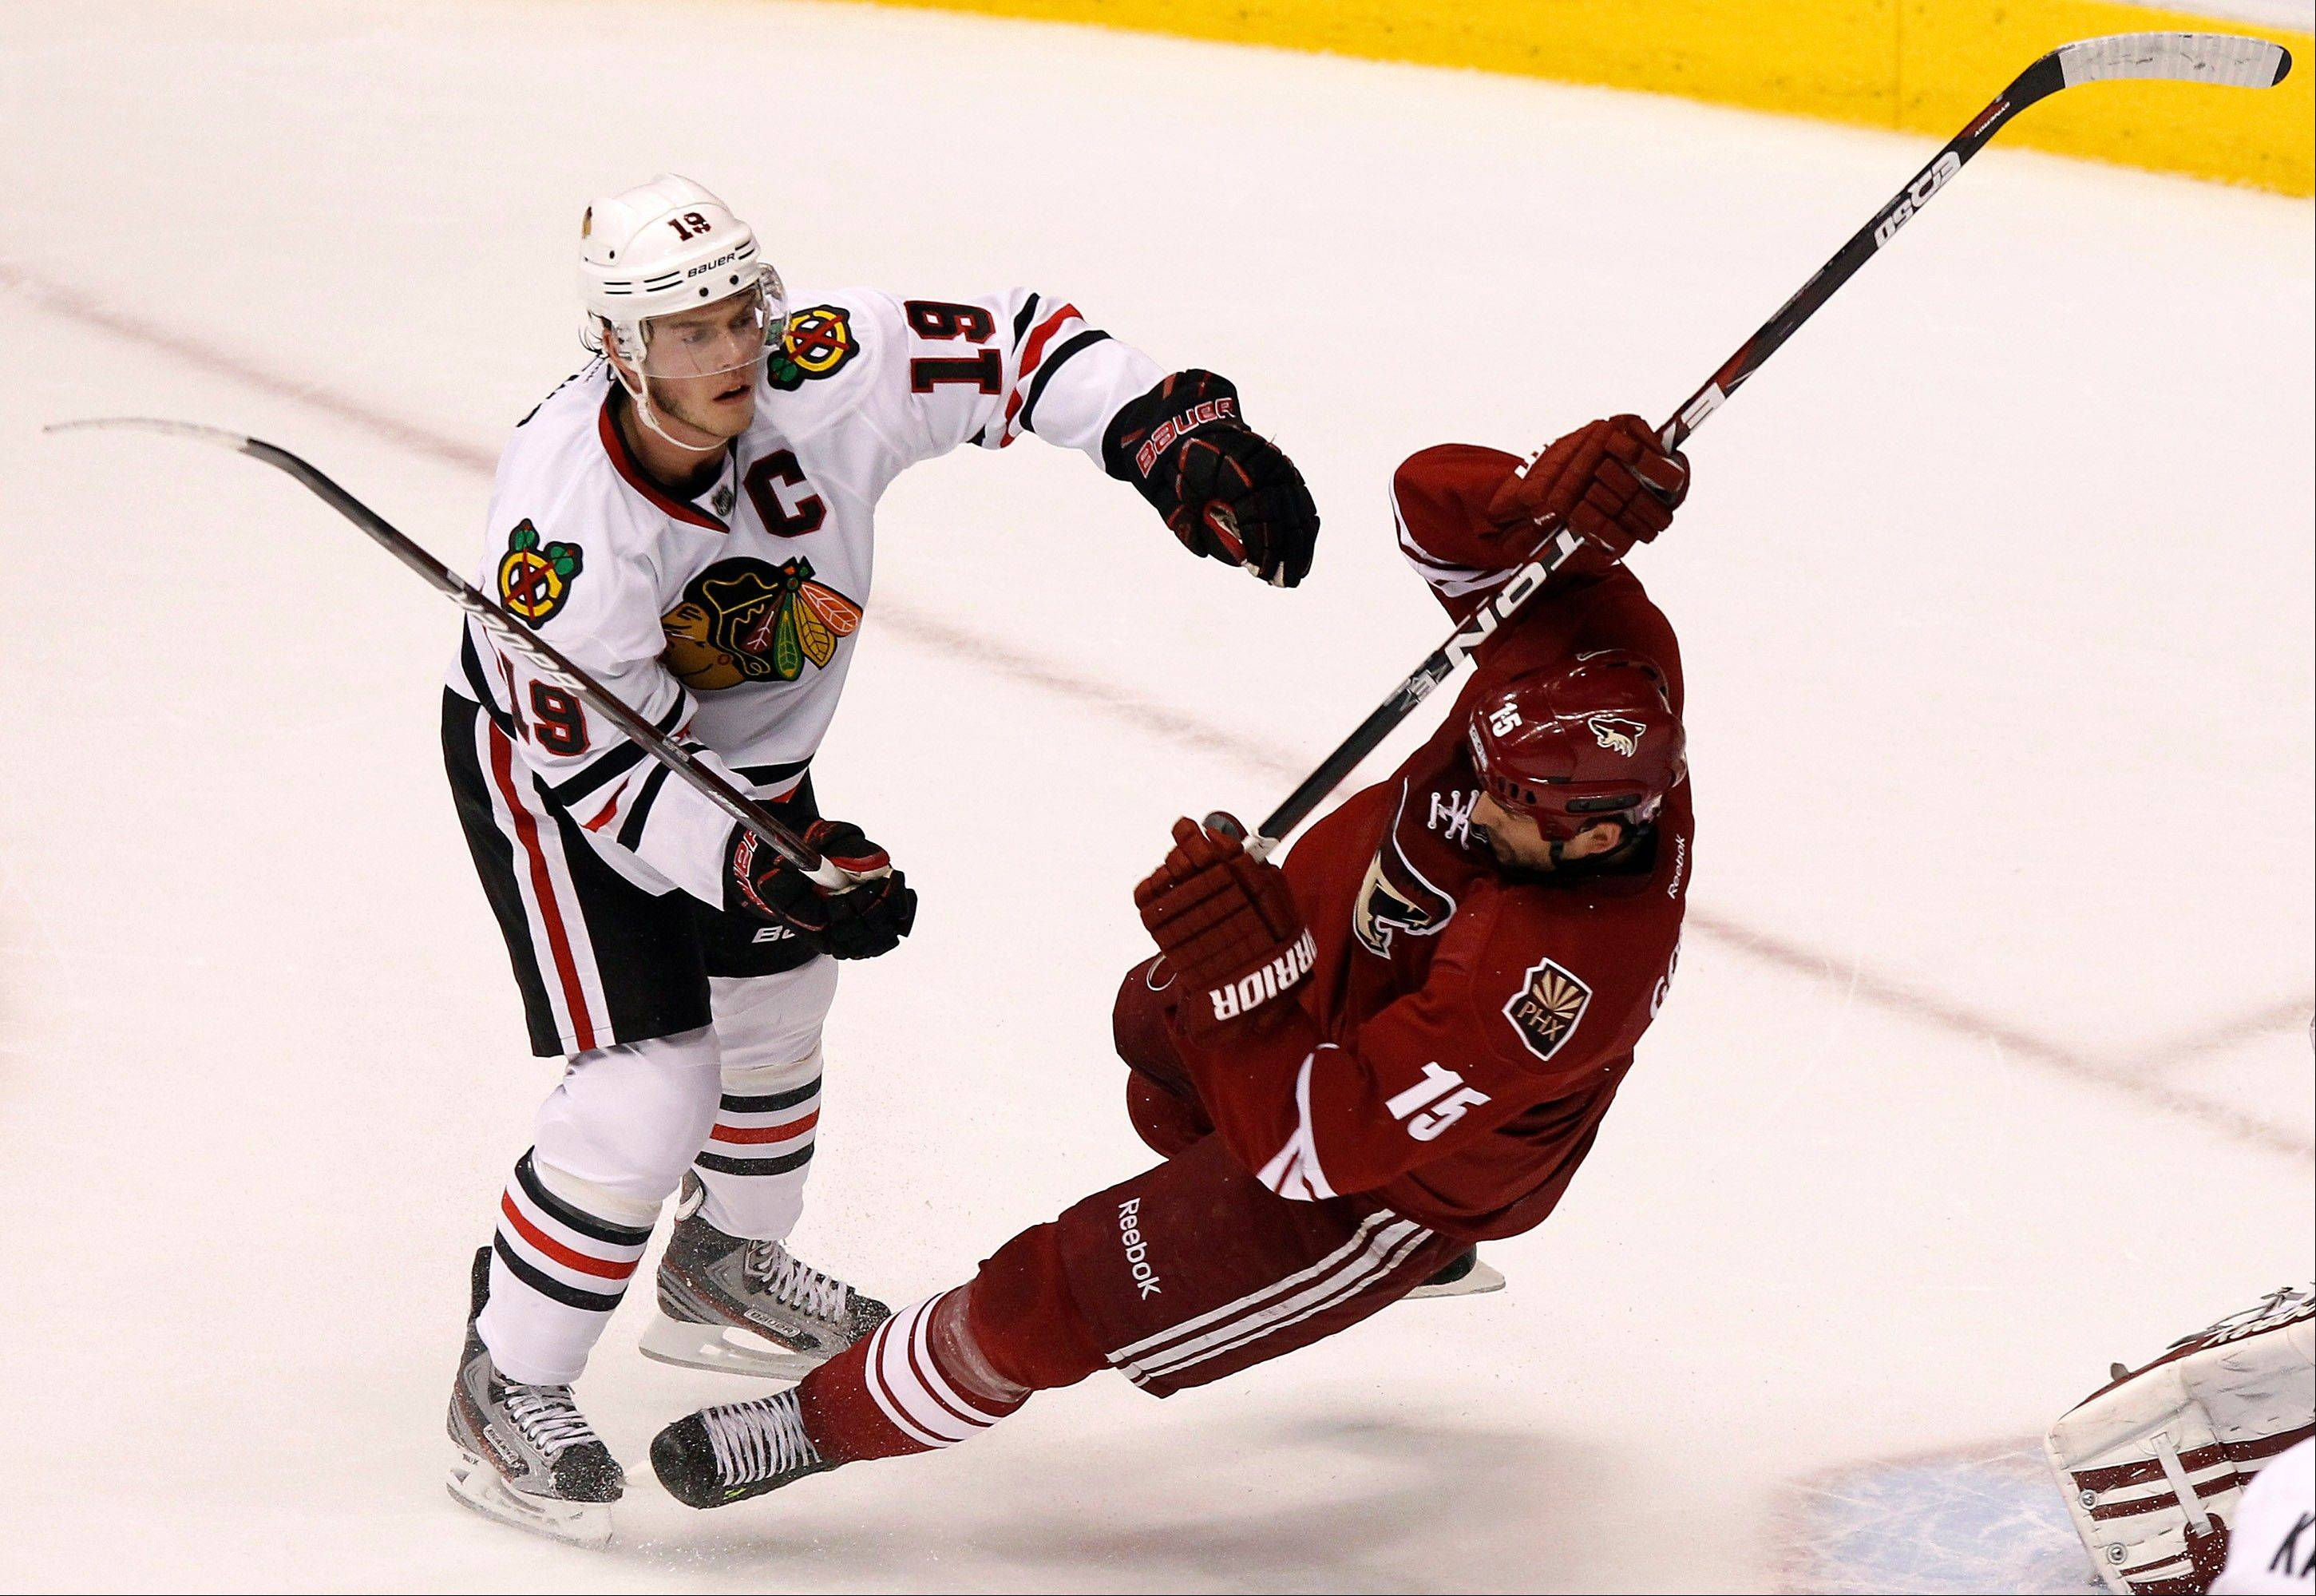 Chicago Blackhawks' Jonathan Toews (19) checks Phoenix Coyotes' Boyd Gordon (15) to the ice during the first period in Game 5 of an NHL hockey Stanley Cup first-round playoff series Saturday, April 21, 2012, in Glendale, Ariz.